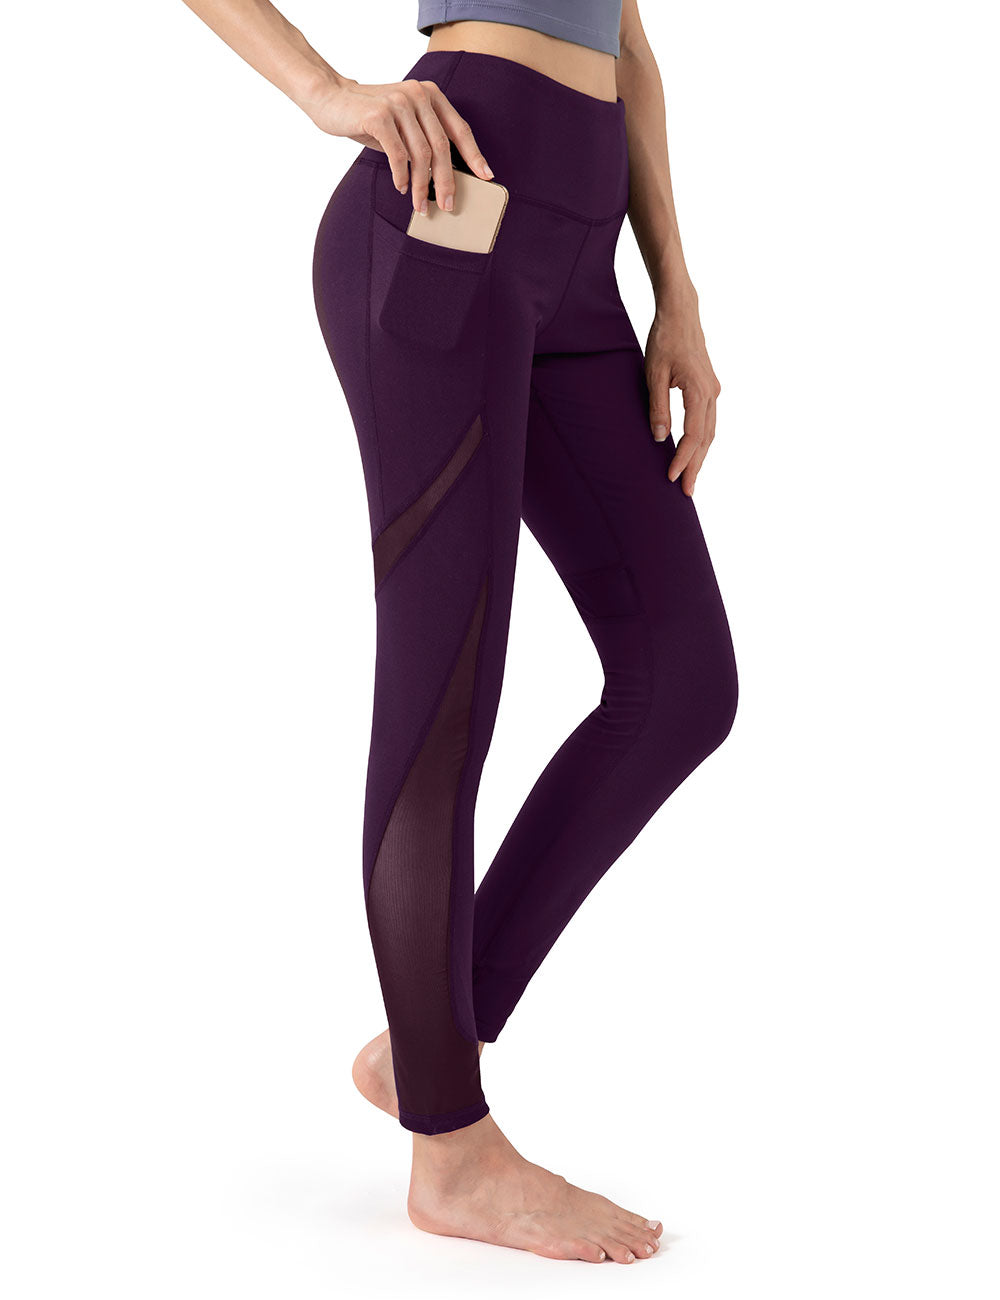 Sport Leggings Pants - ALONGFIT